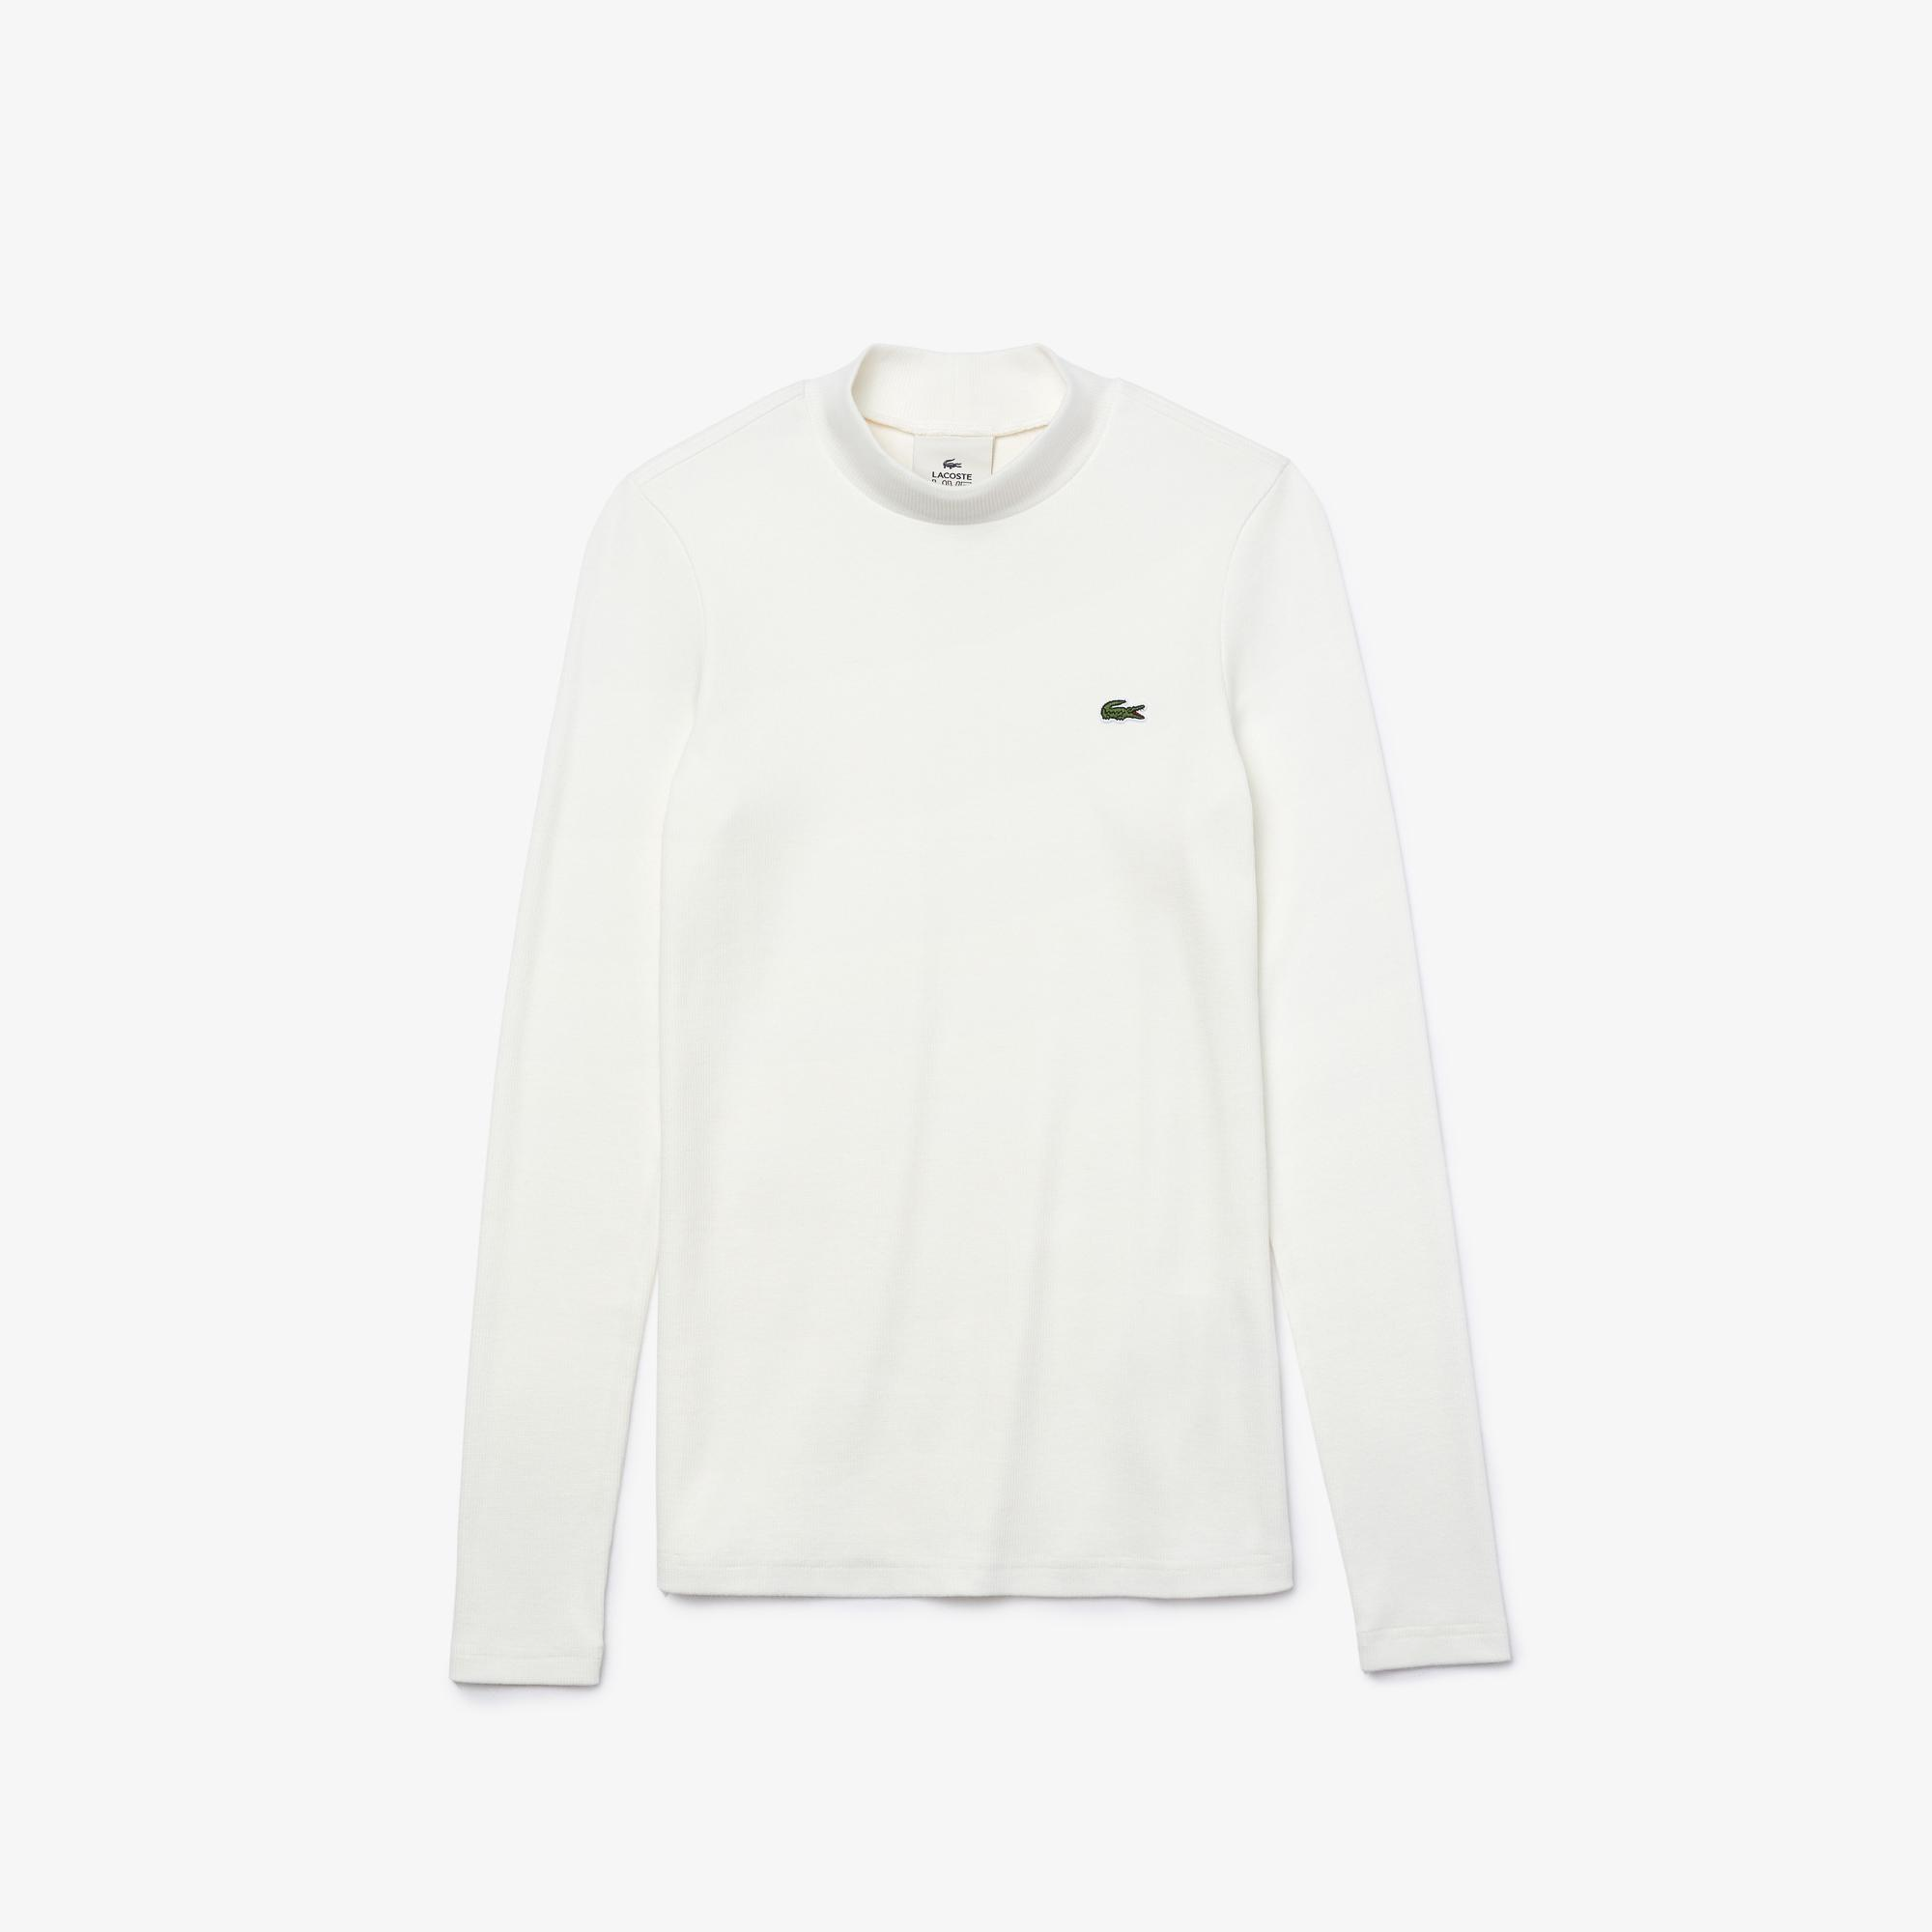 Lacoste Women's LIVE Lightweight Ribbed Cotton T-shirt